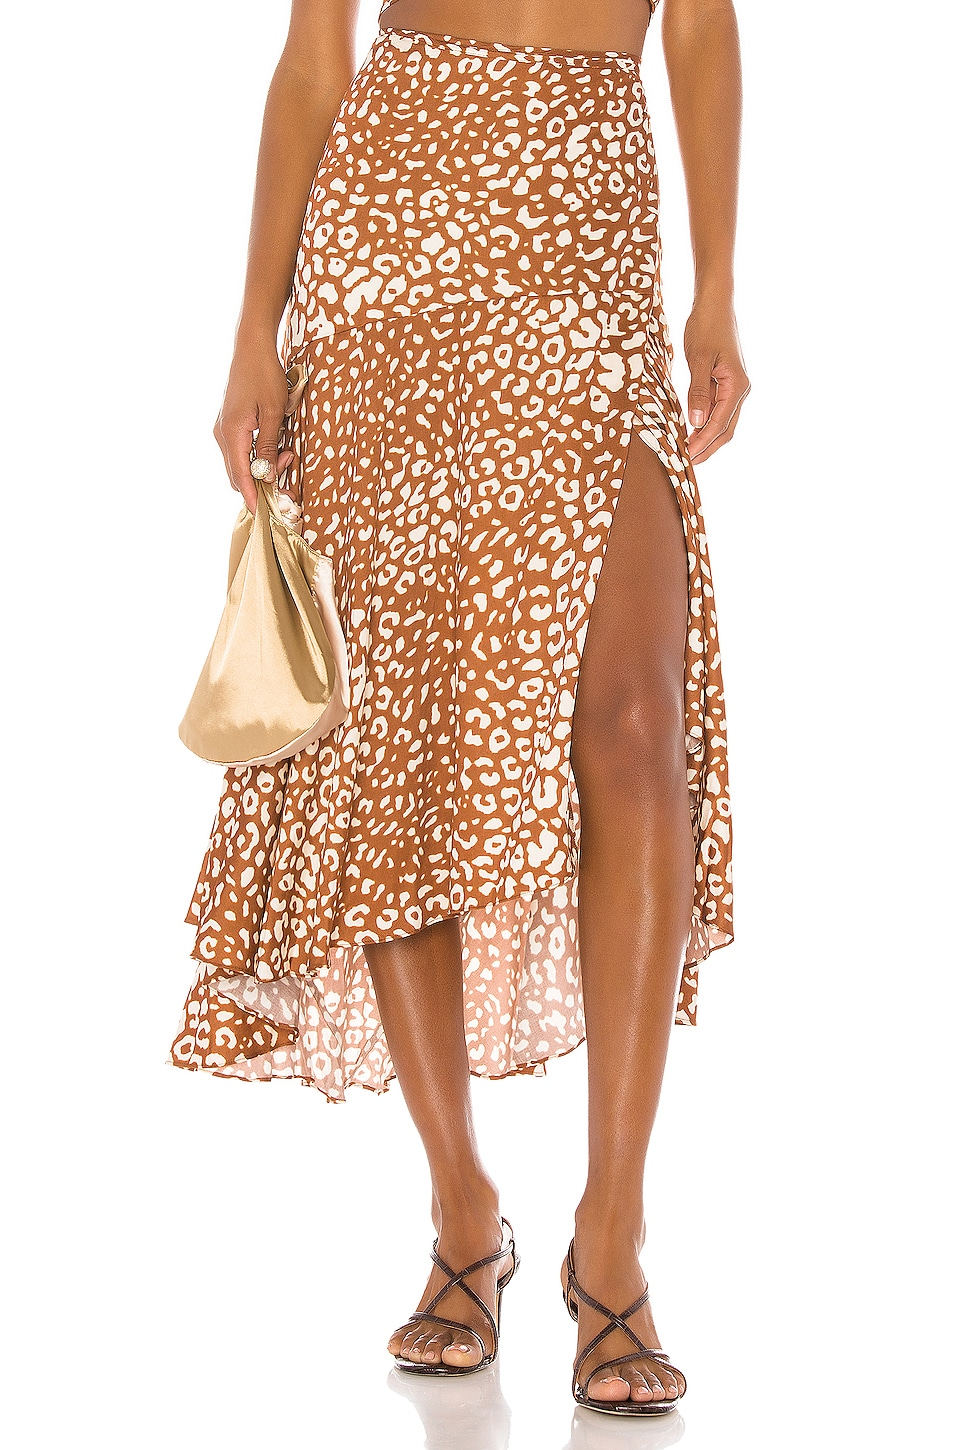 Alexis Fontaine Skirt in Sienna Leopard